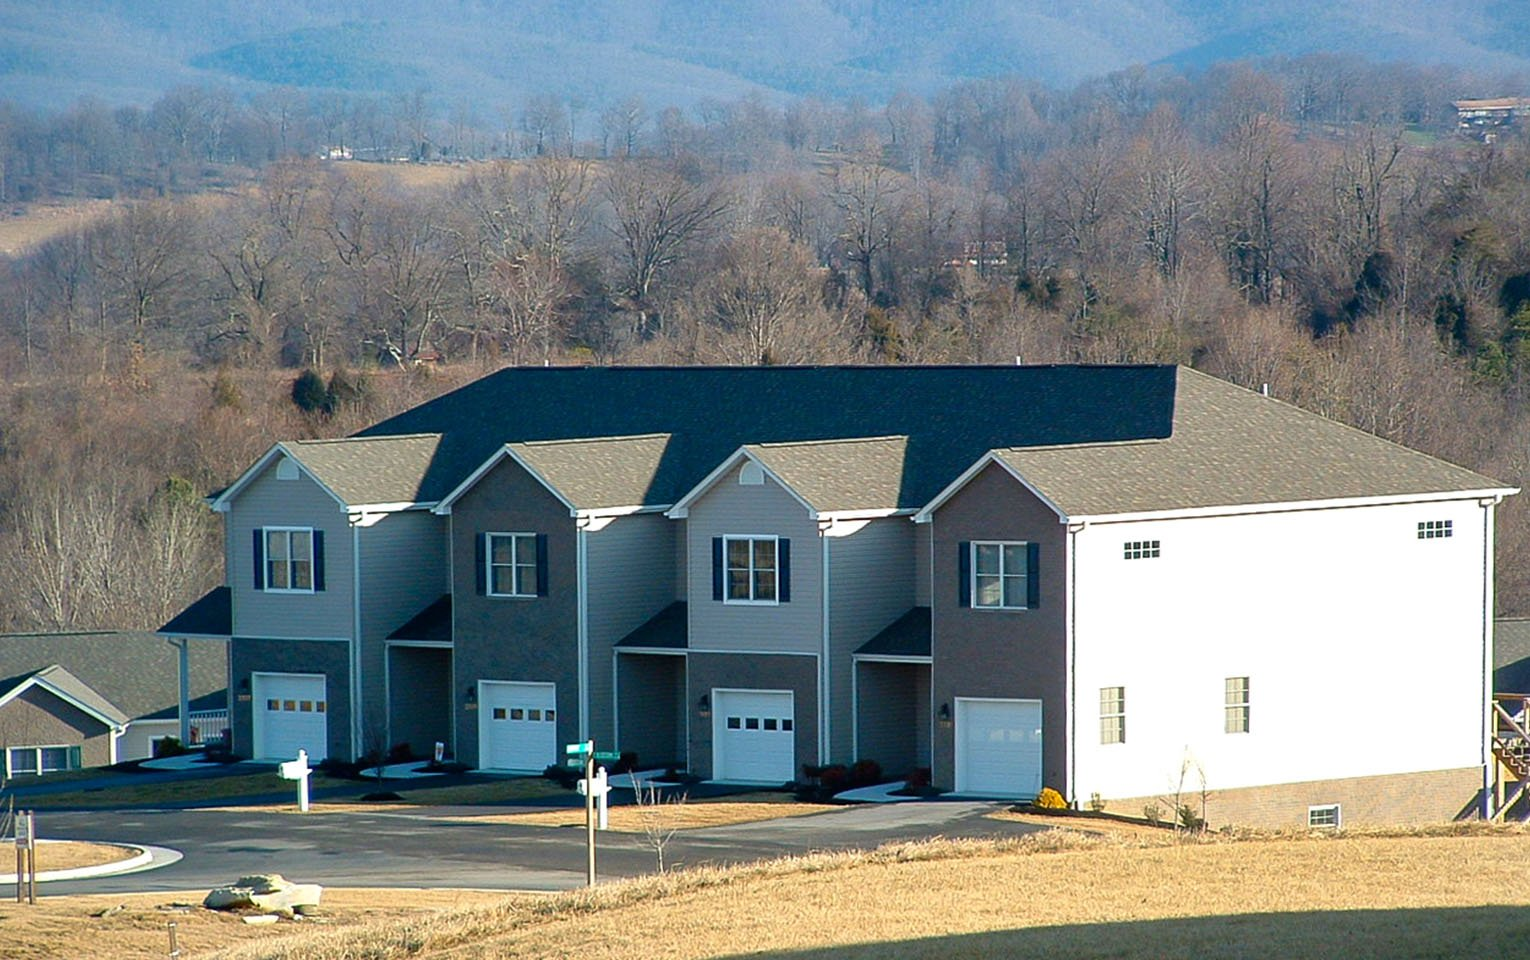 The Orchards Townhomes